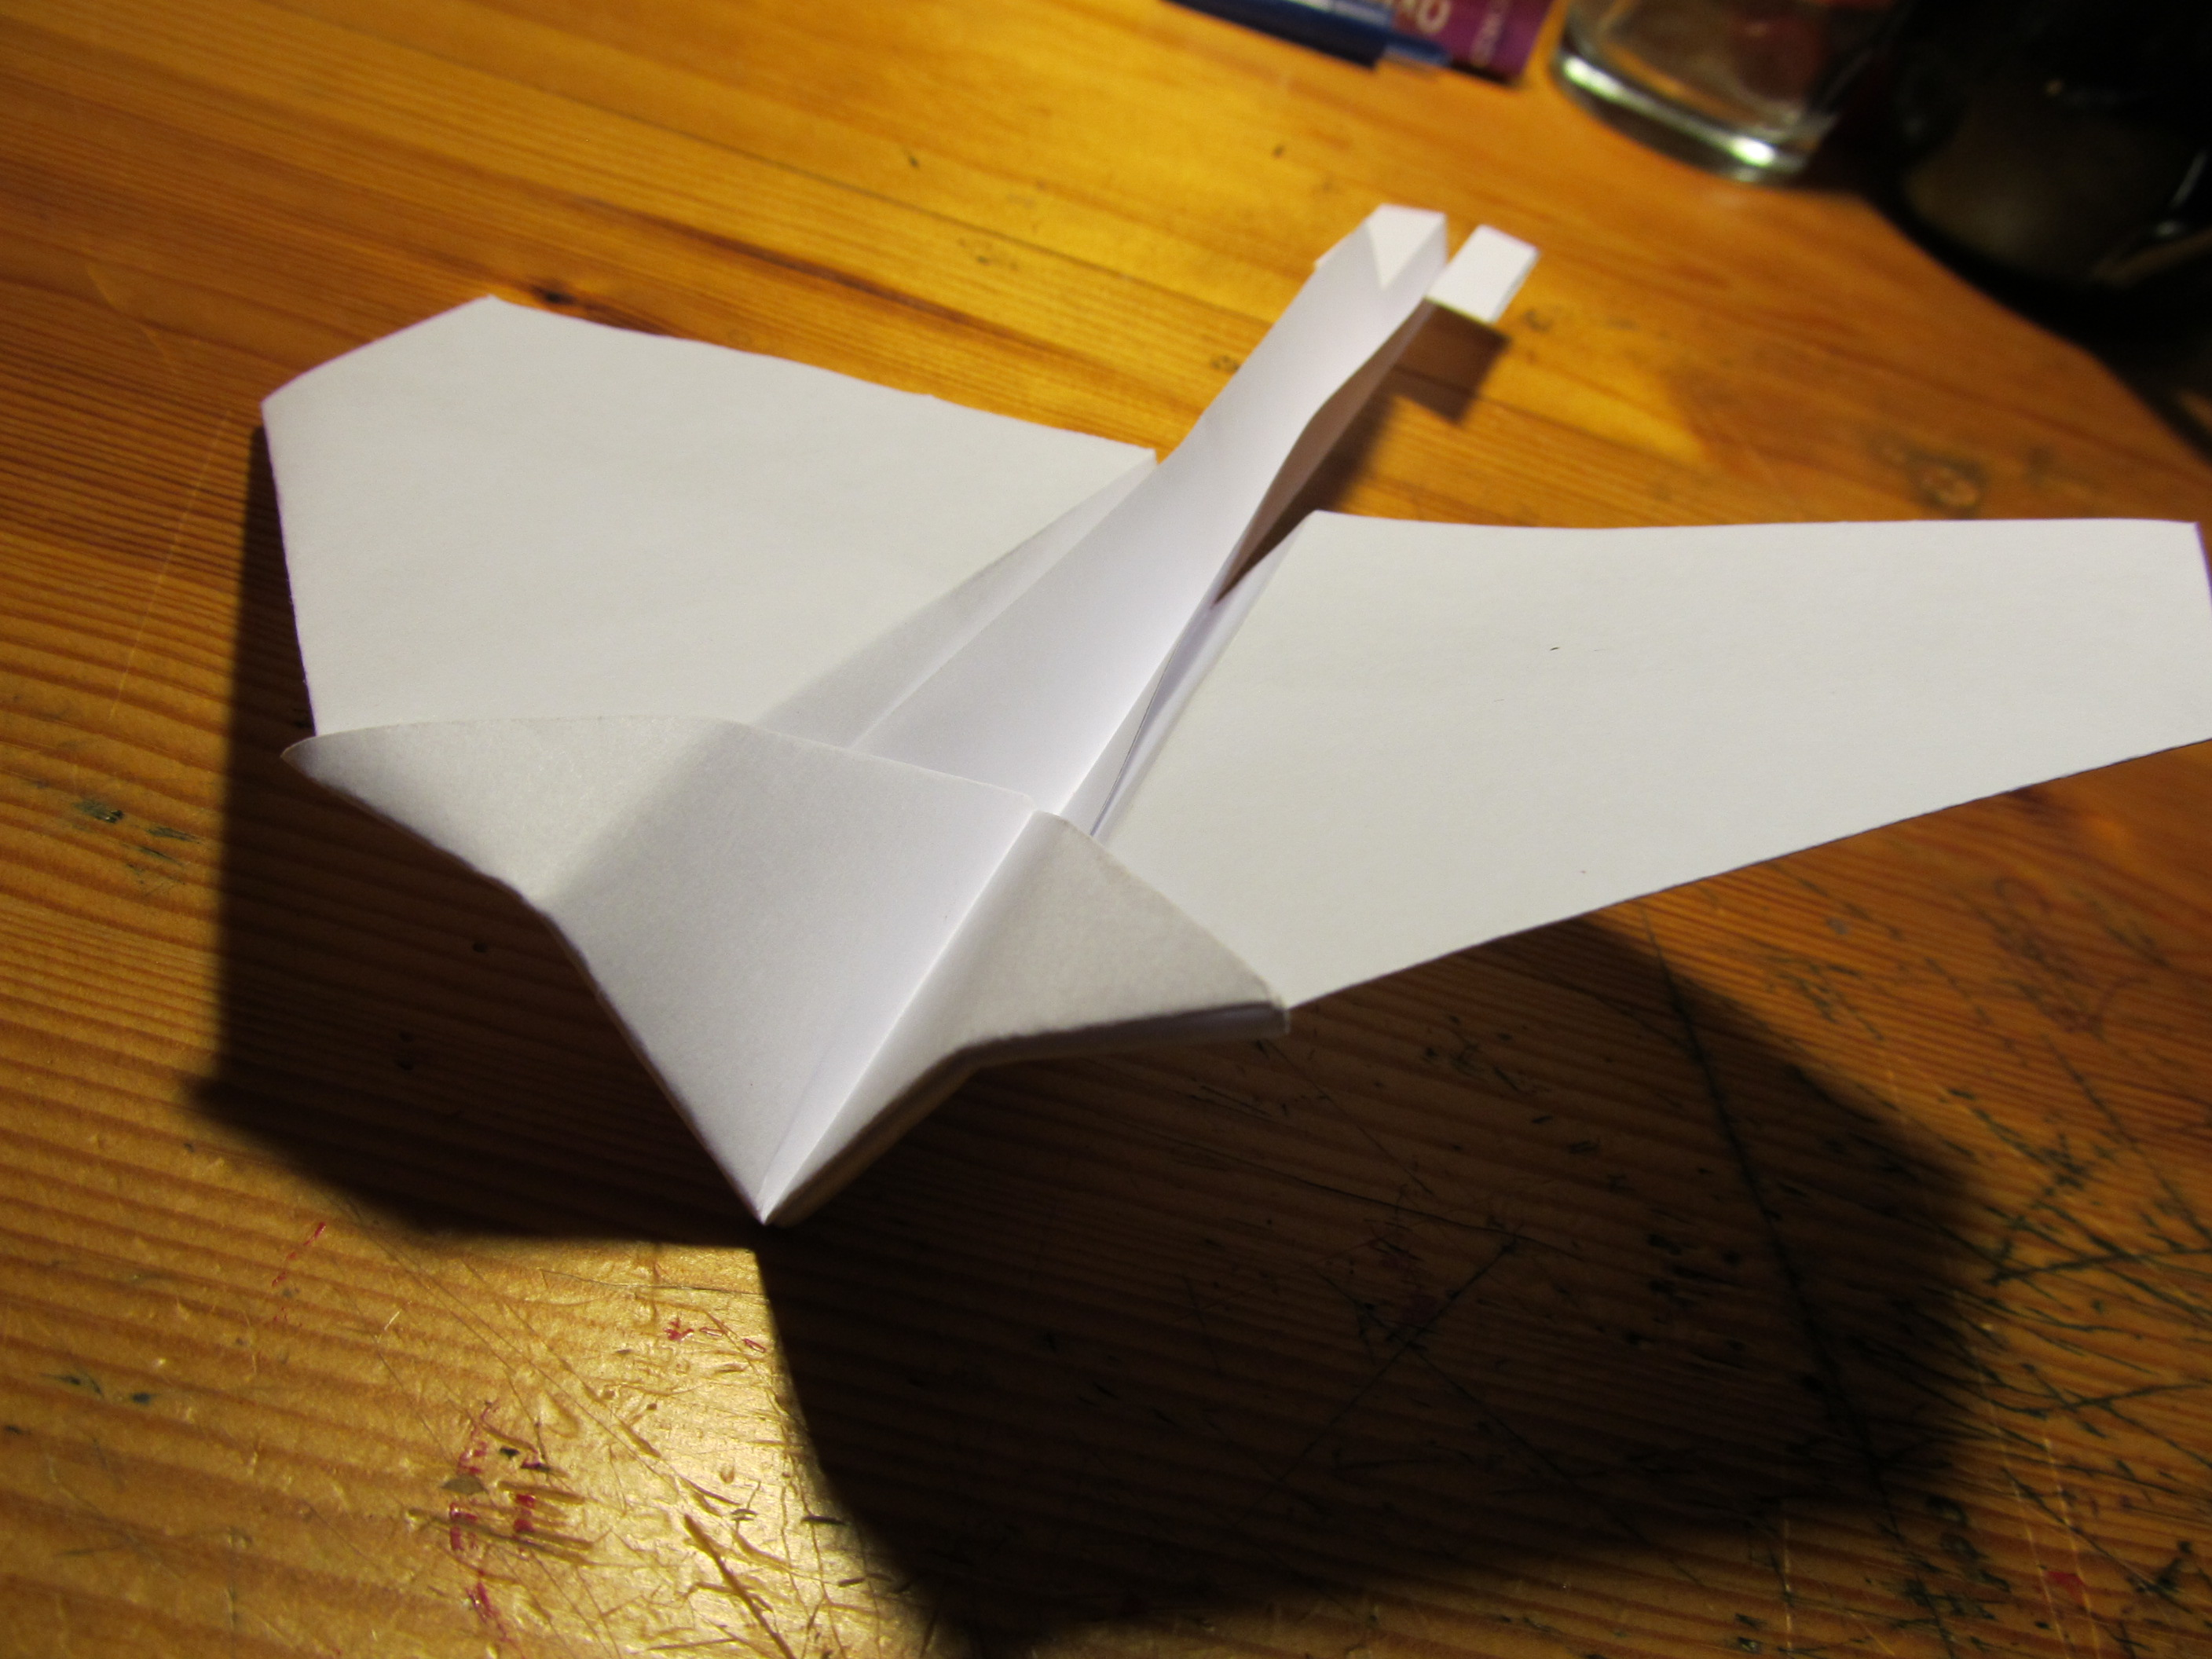 The Omicron, an awesome paper plane!